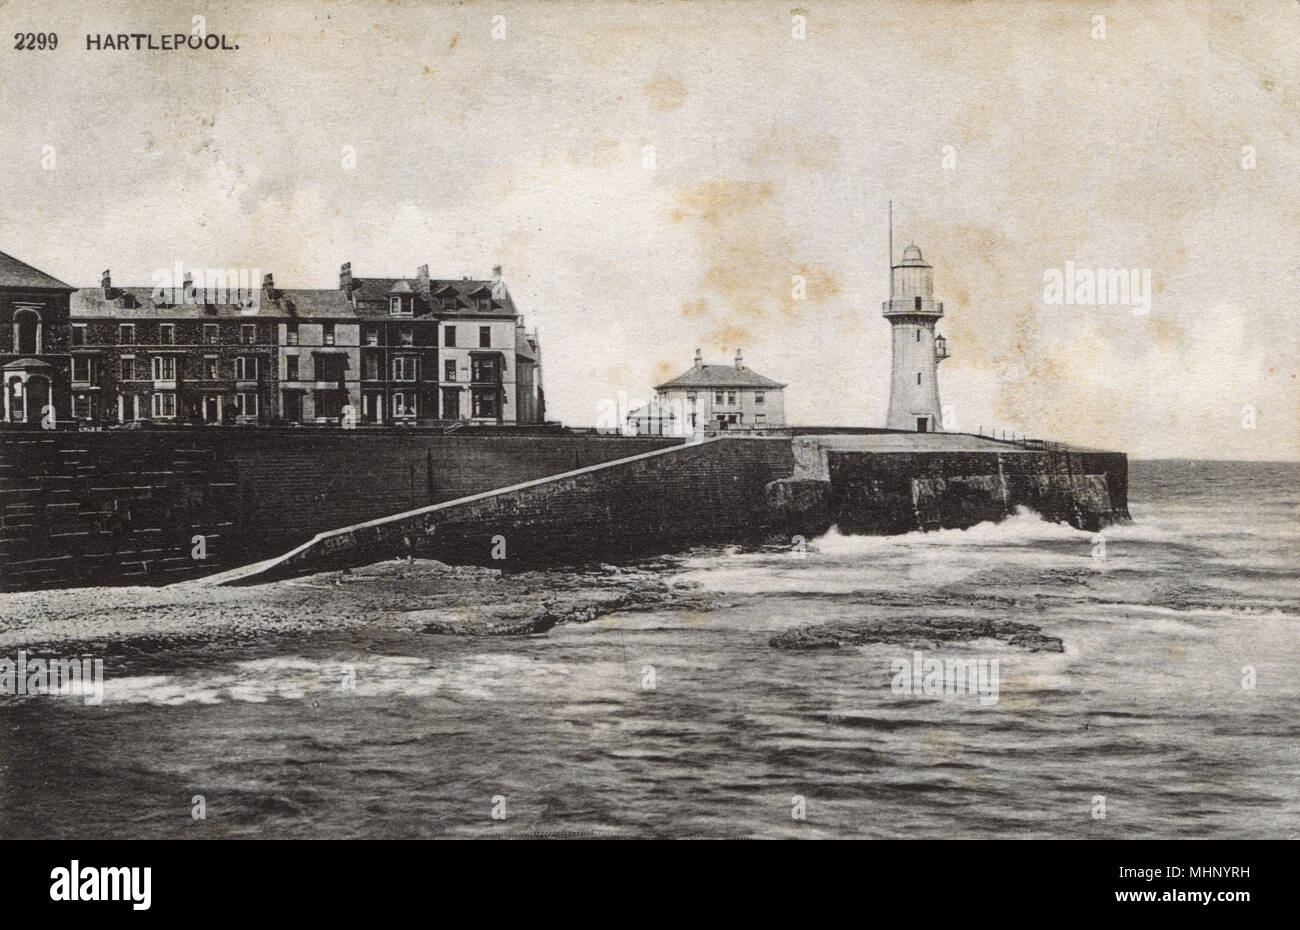 View of Hartlepool, terraced buildings and lighthouse, County Durham.      Date: circa 1900s - Stock Image